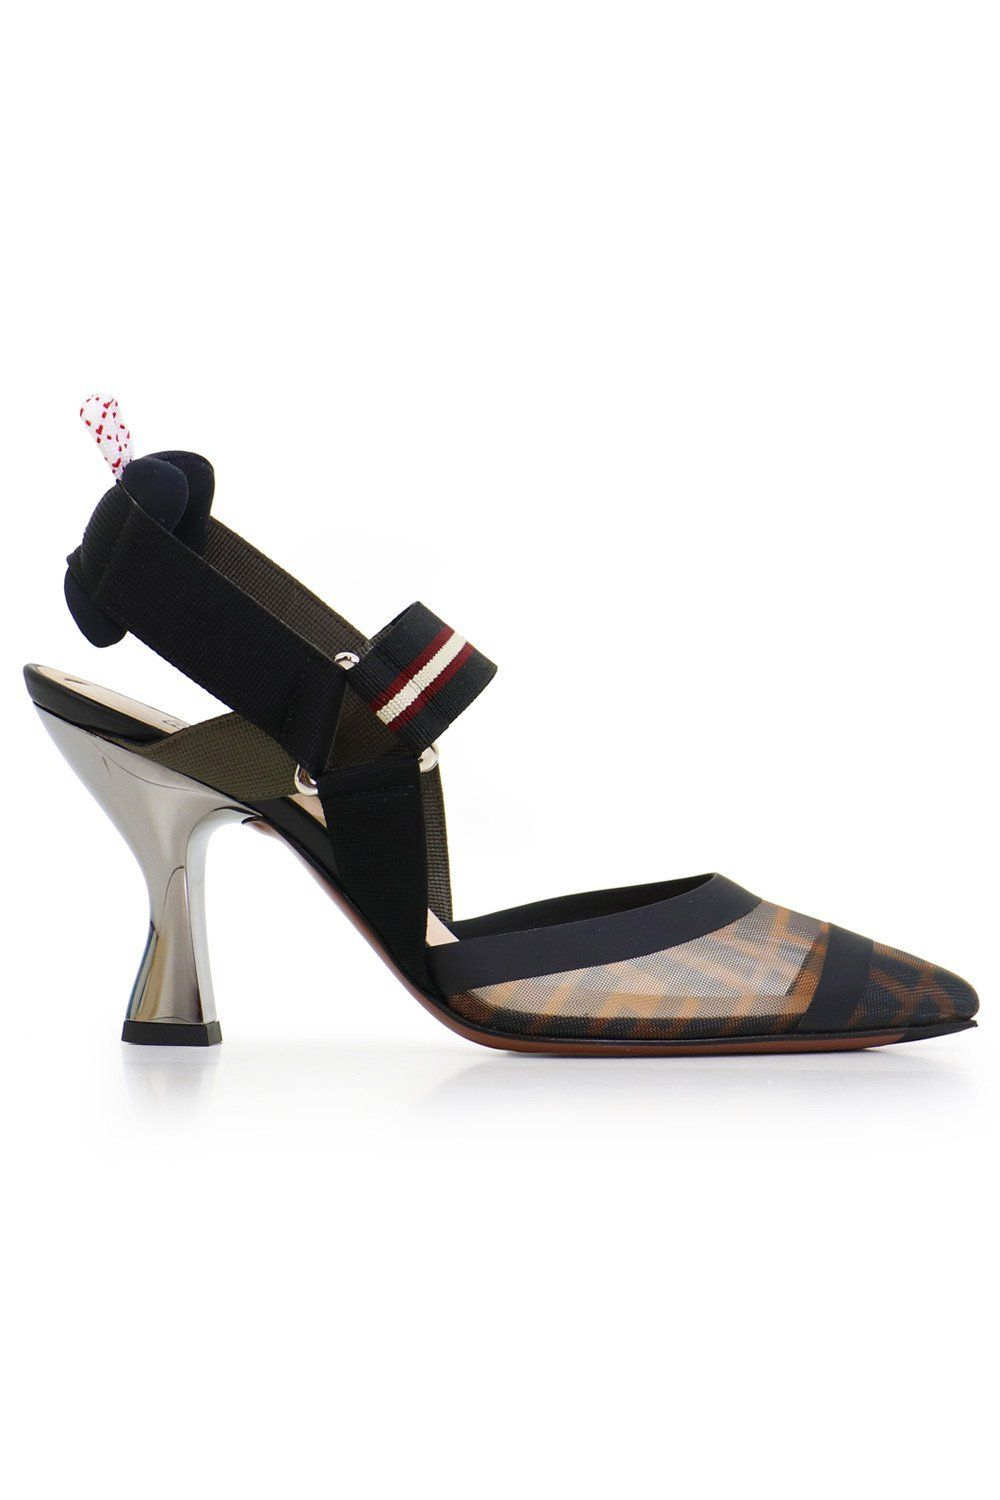 088d24da14b The Fendi FF Logo Slingback is crafted in Italy with the FF logo print. The